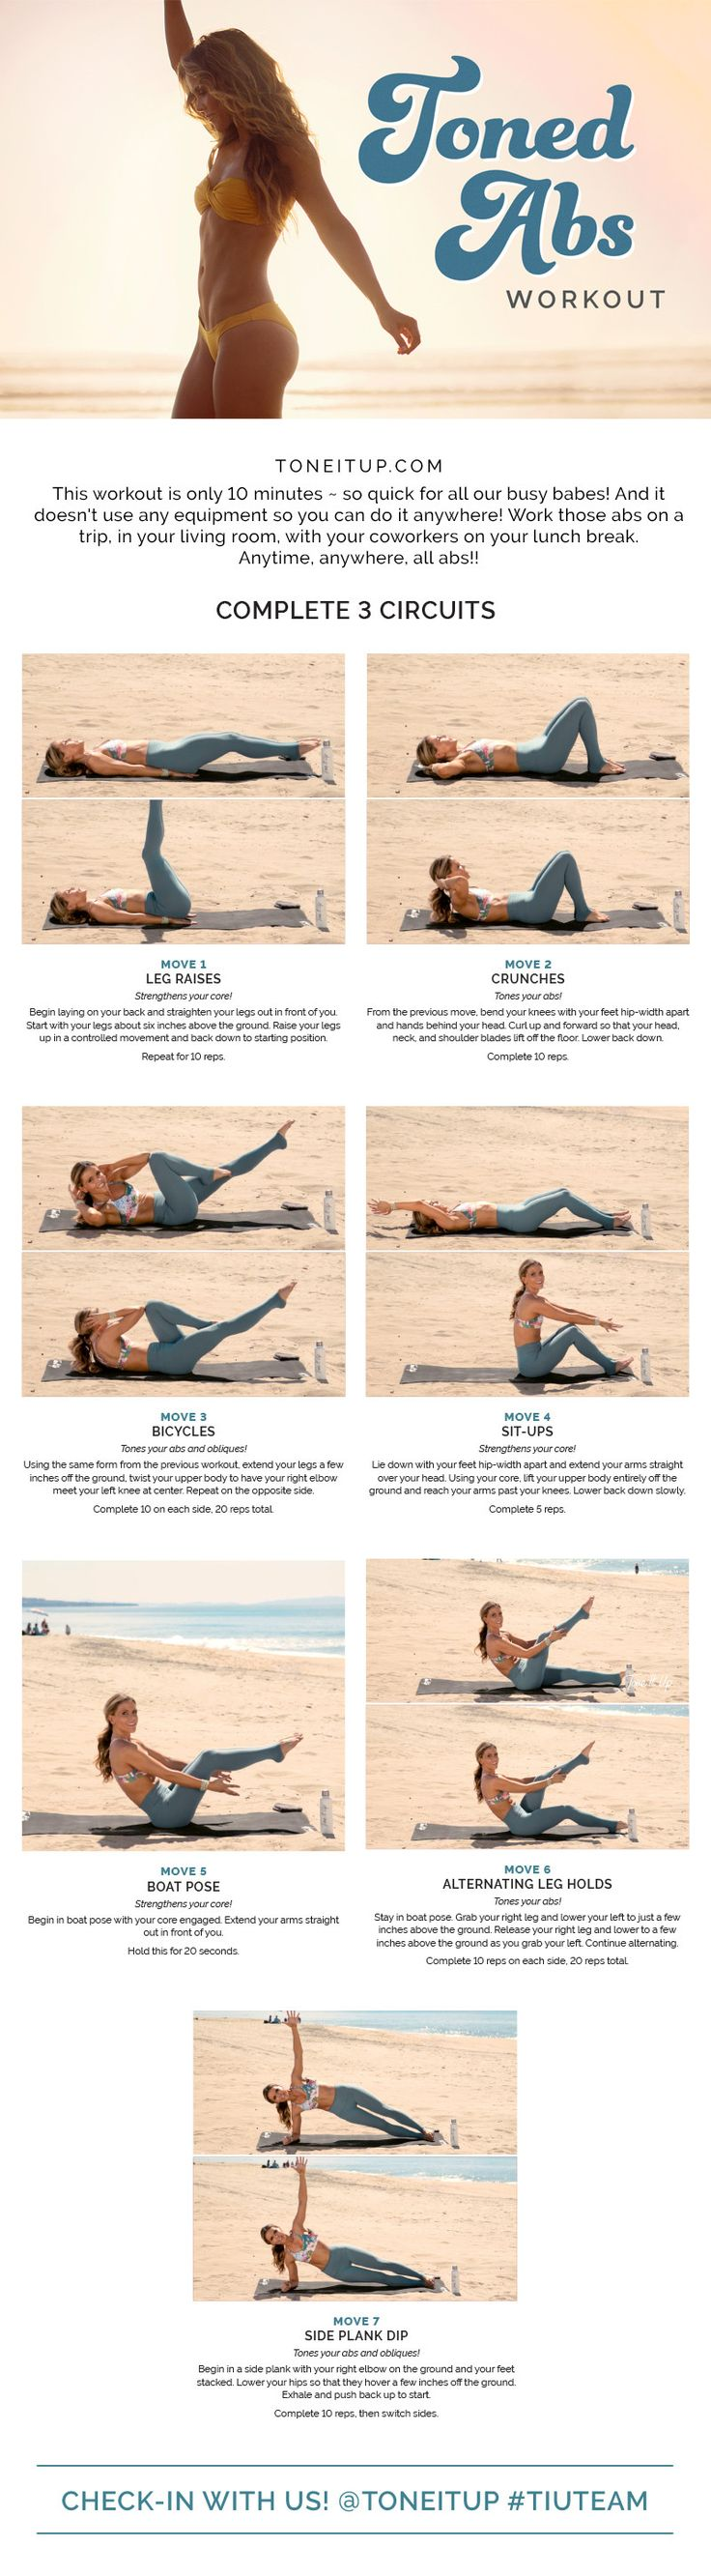 WELCOME TO THE TONE IT UP DAILY WORKOUT! Every day, we post a workout to tone & sculpt your beautiful body. Remember, you can make it work with your schedul